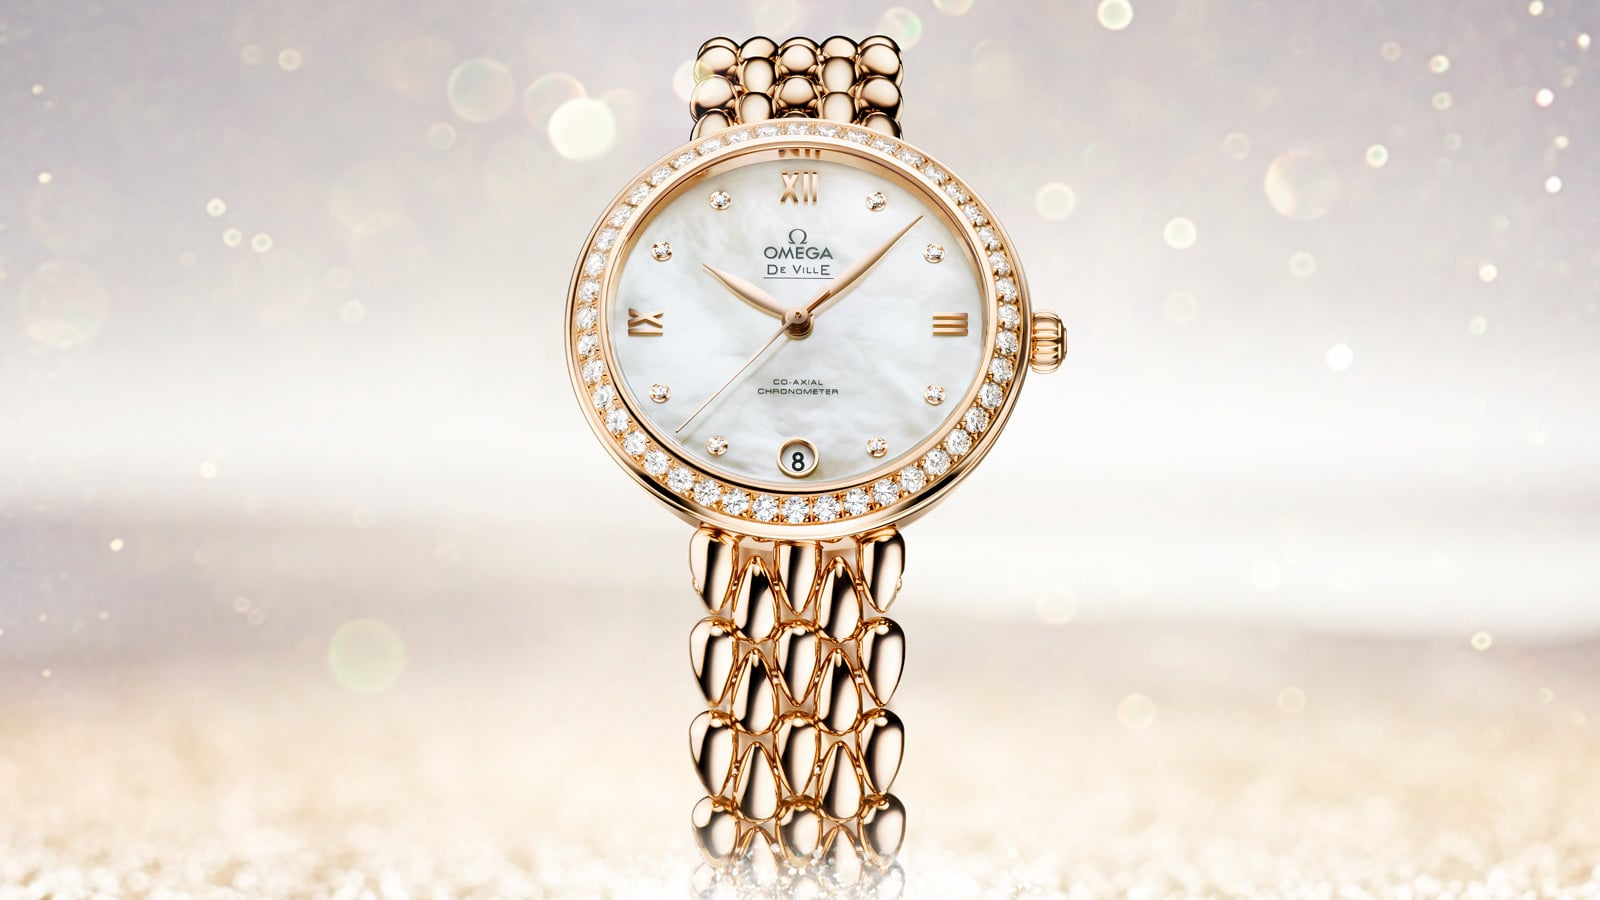 Omega Dewdrop watch in yellow gold with 8 diamond indexes on its mother-of-pearl dial